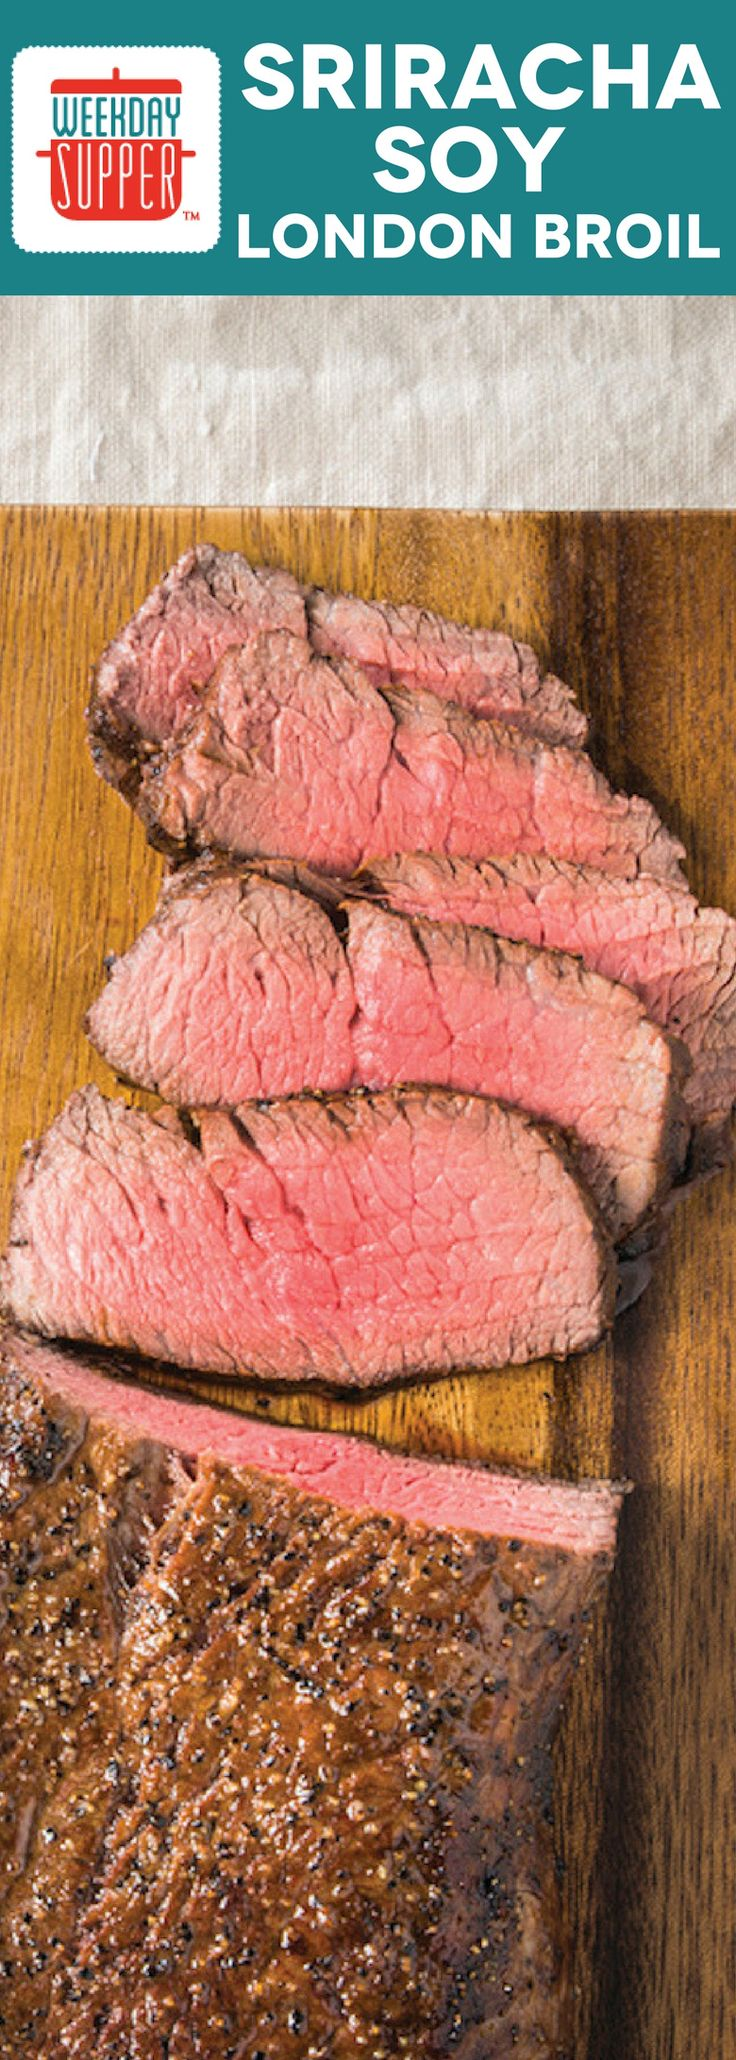 Add even more flavor to one of our favorite cuts of beef with this Sriracha Soy Marinated London Broil. It cooks up quickly for #WeekdaySupper!